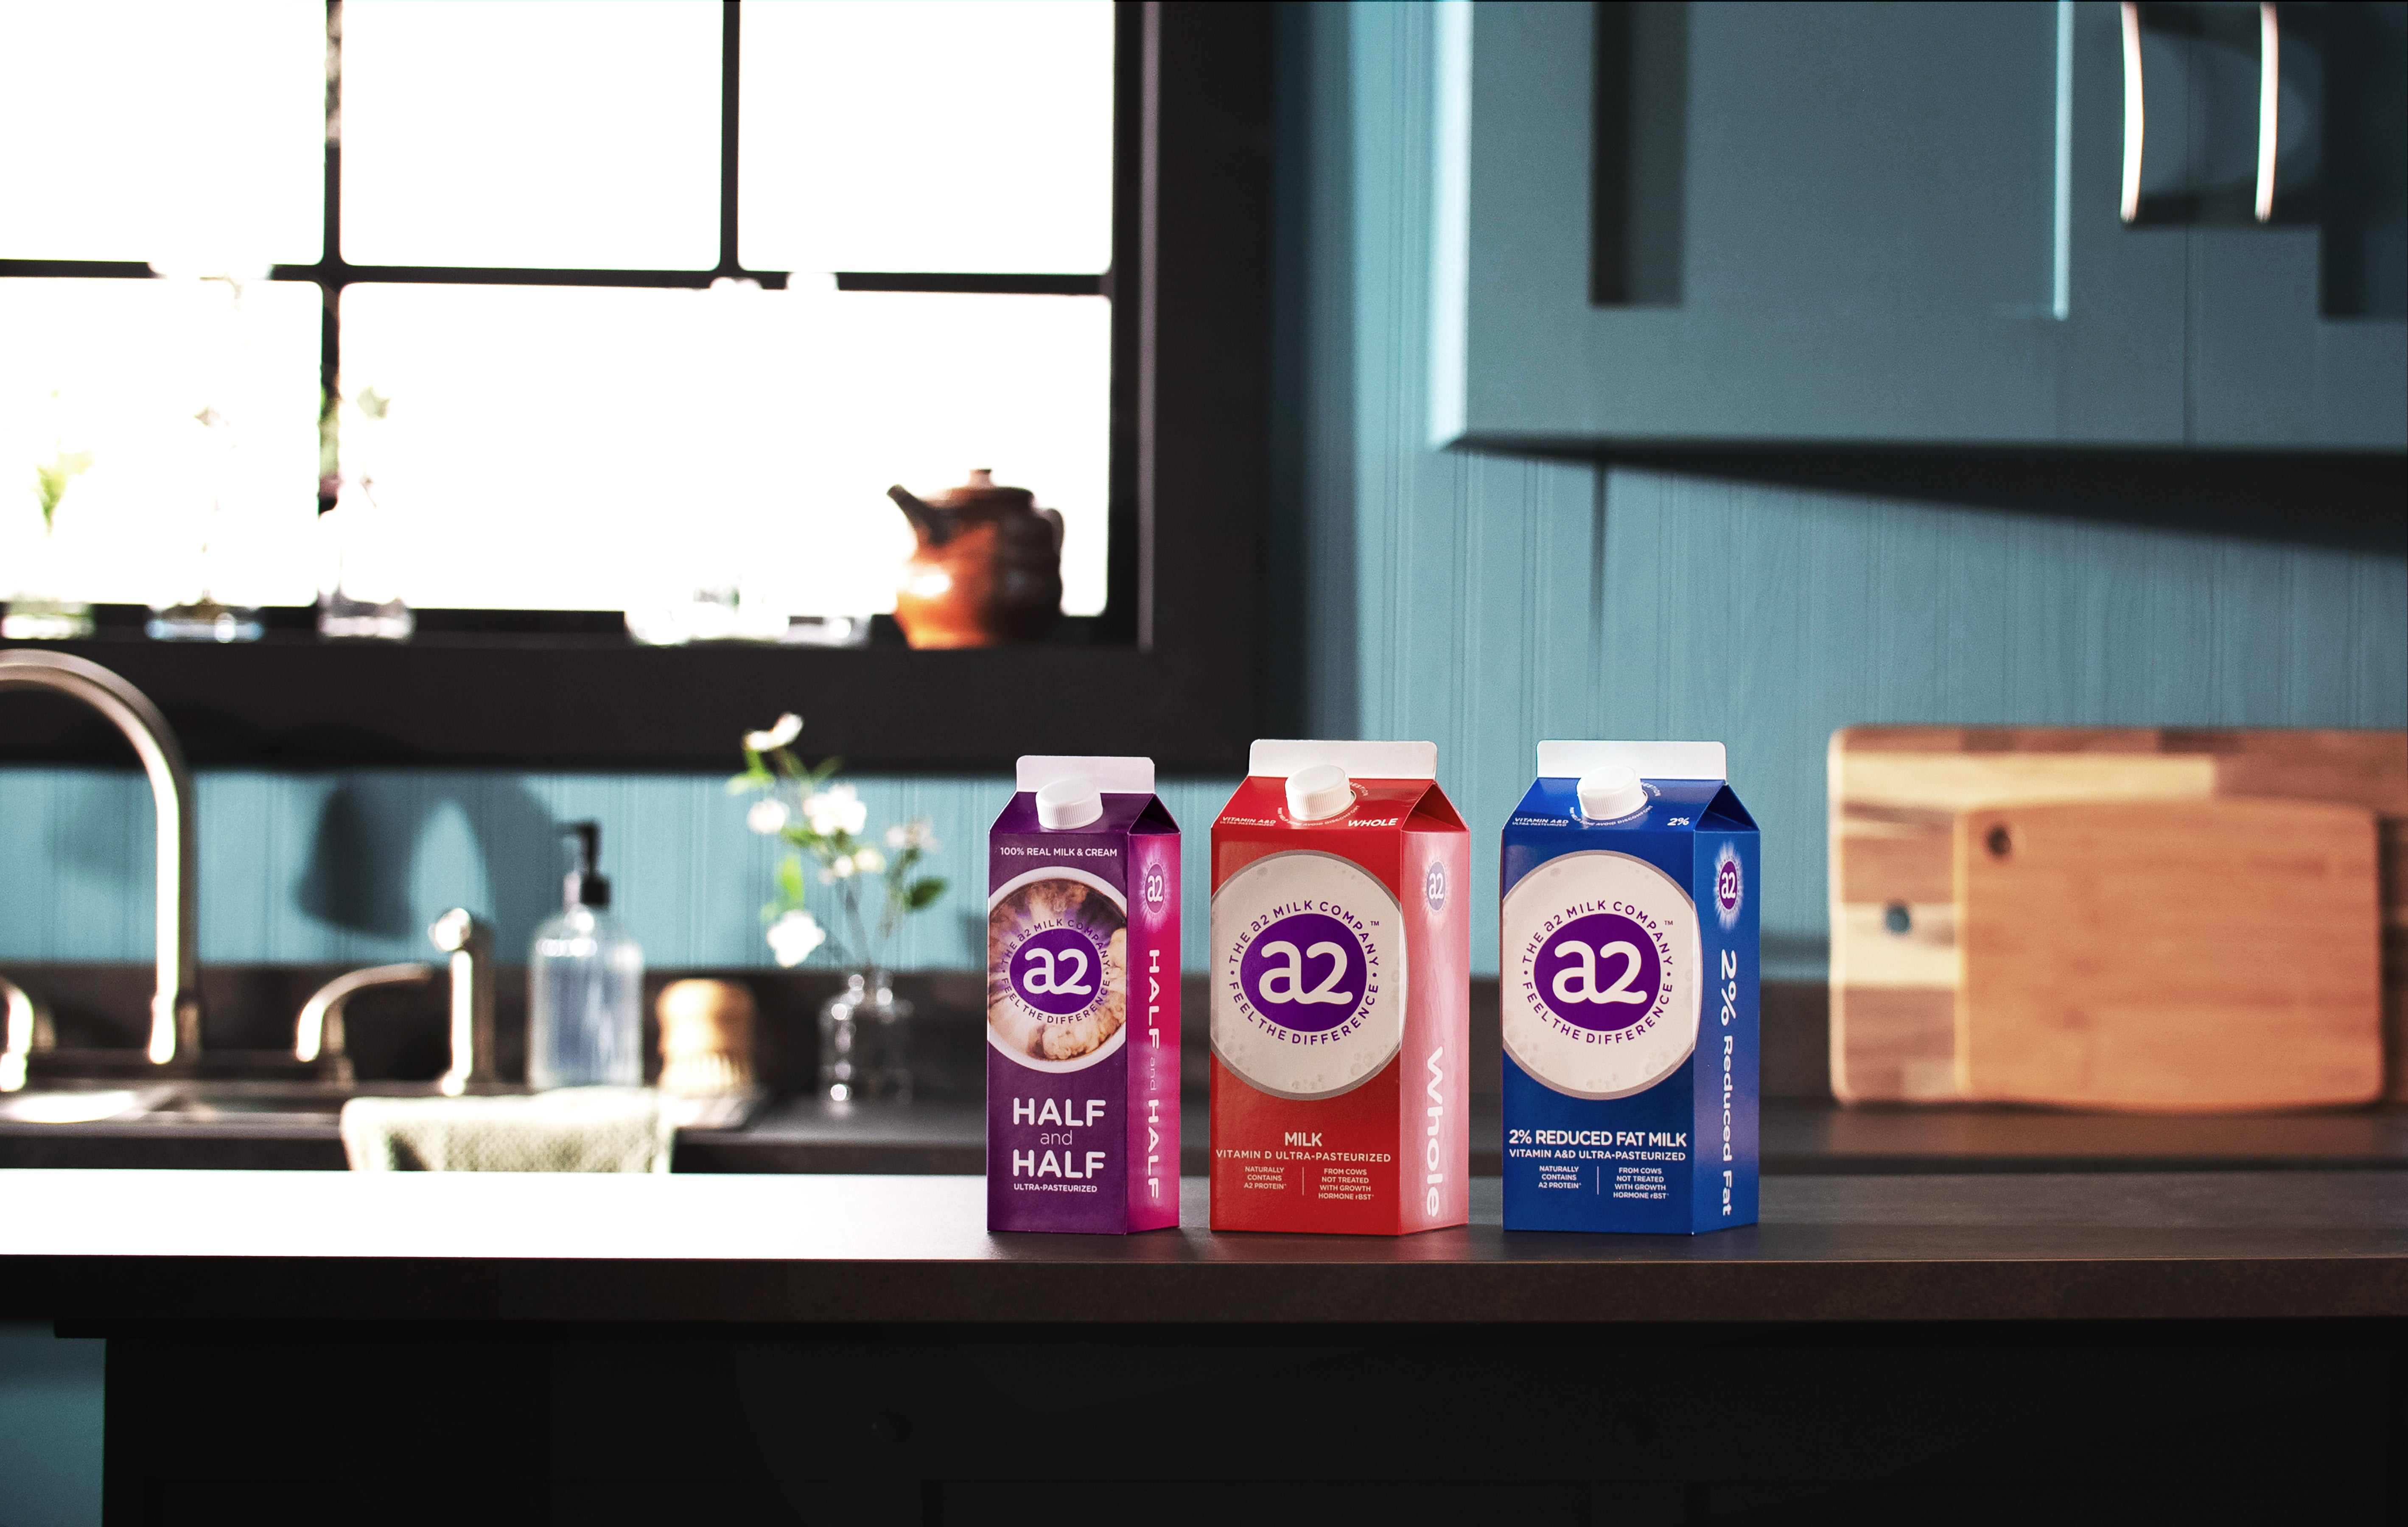 Which type of a2 Milk® should you choose when cooking?